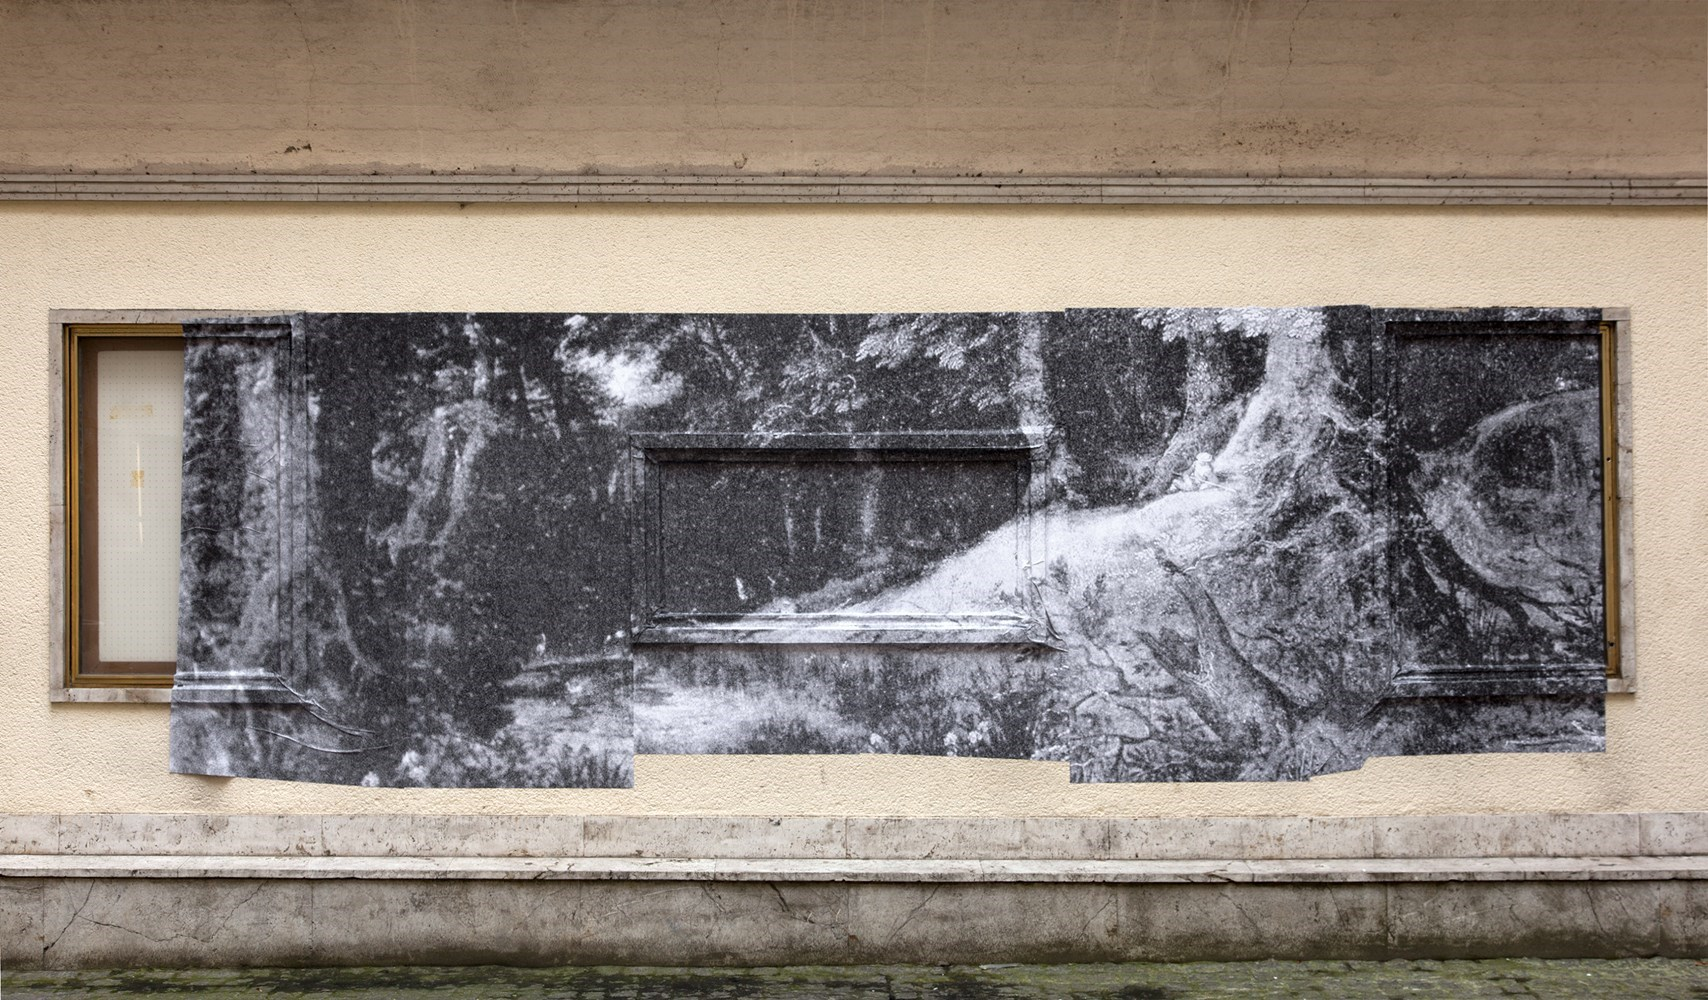 Waldlandschaft detail (Gillis van Coninxloo, 1598), black & white prints, ca. 180 cm x 500 cm, 2014<br />Installation view Motto Berlin